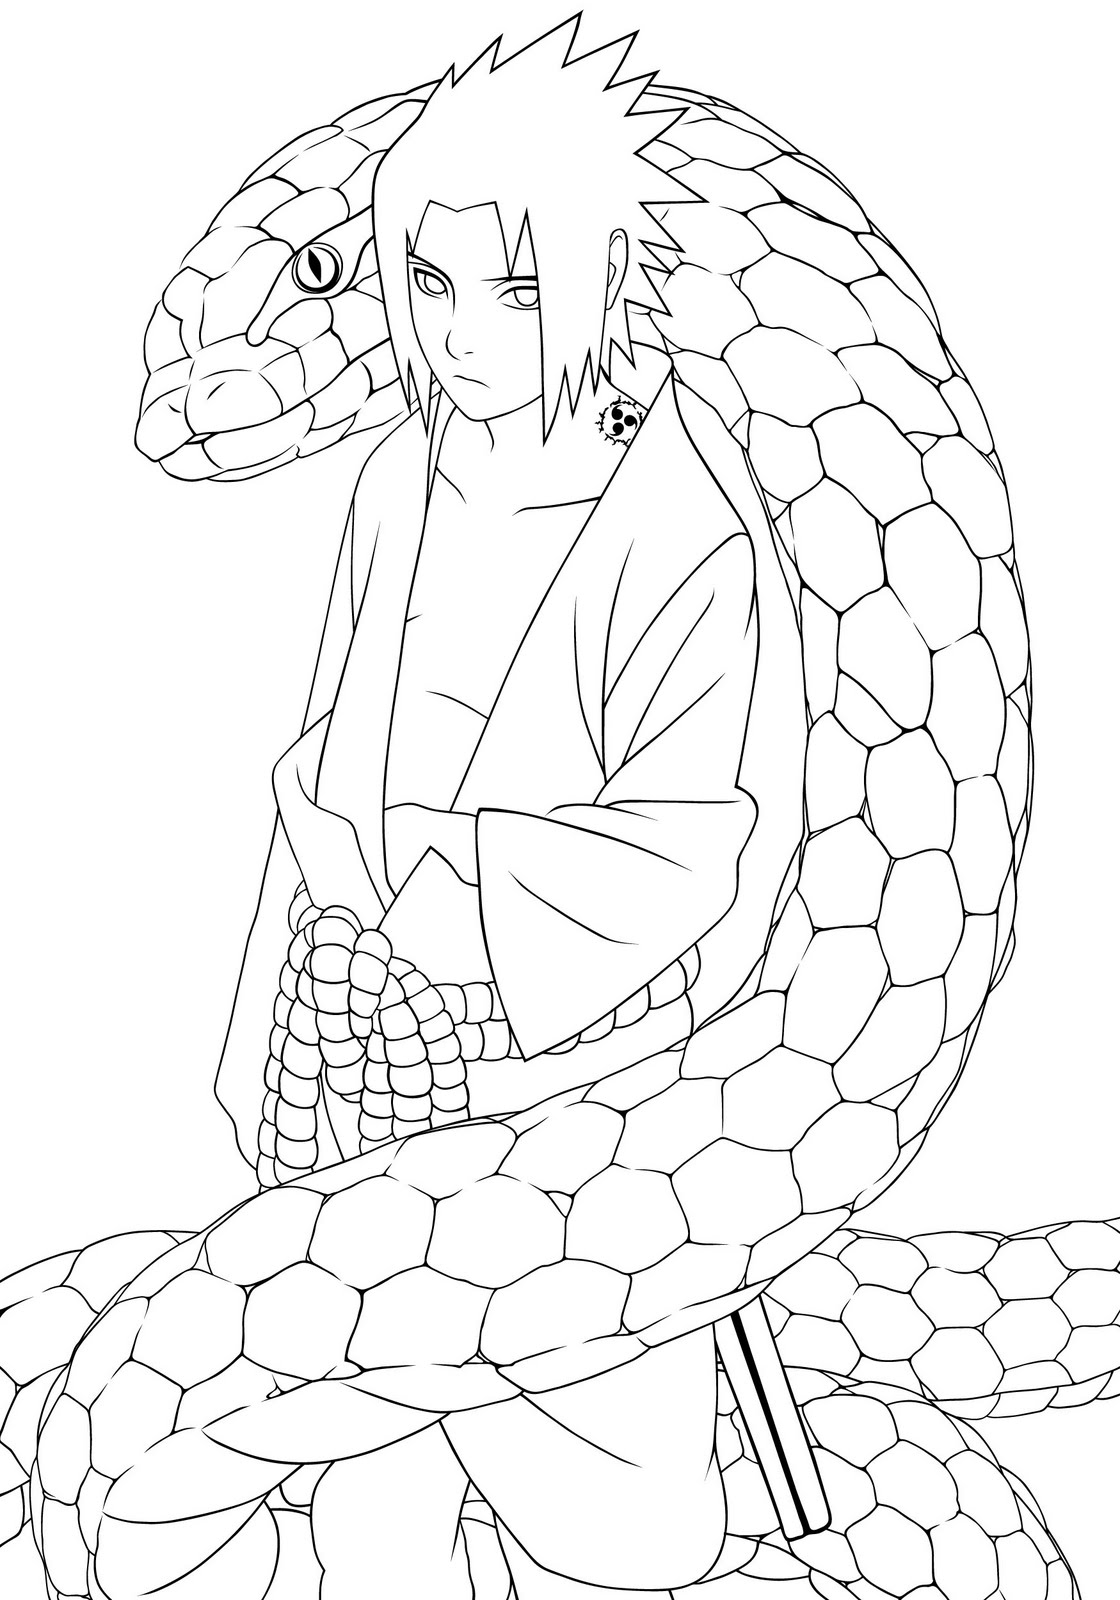 Naruto Coloring Pages additionally Mascot Elephant Costume as well Adult Sexy Beer Bottle Costume Ca 014417 as well File Carmageddon Reincarnation Artwork 6 together with Adult Nutty Professor Lab Coat Costume Ca 014674. on halloween animal characters